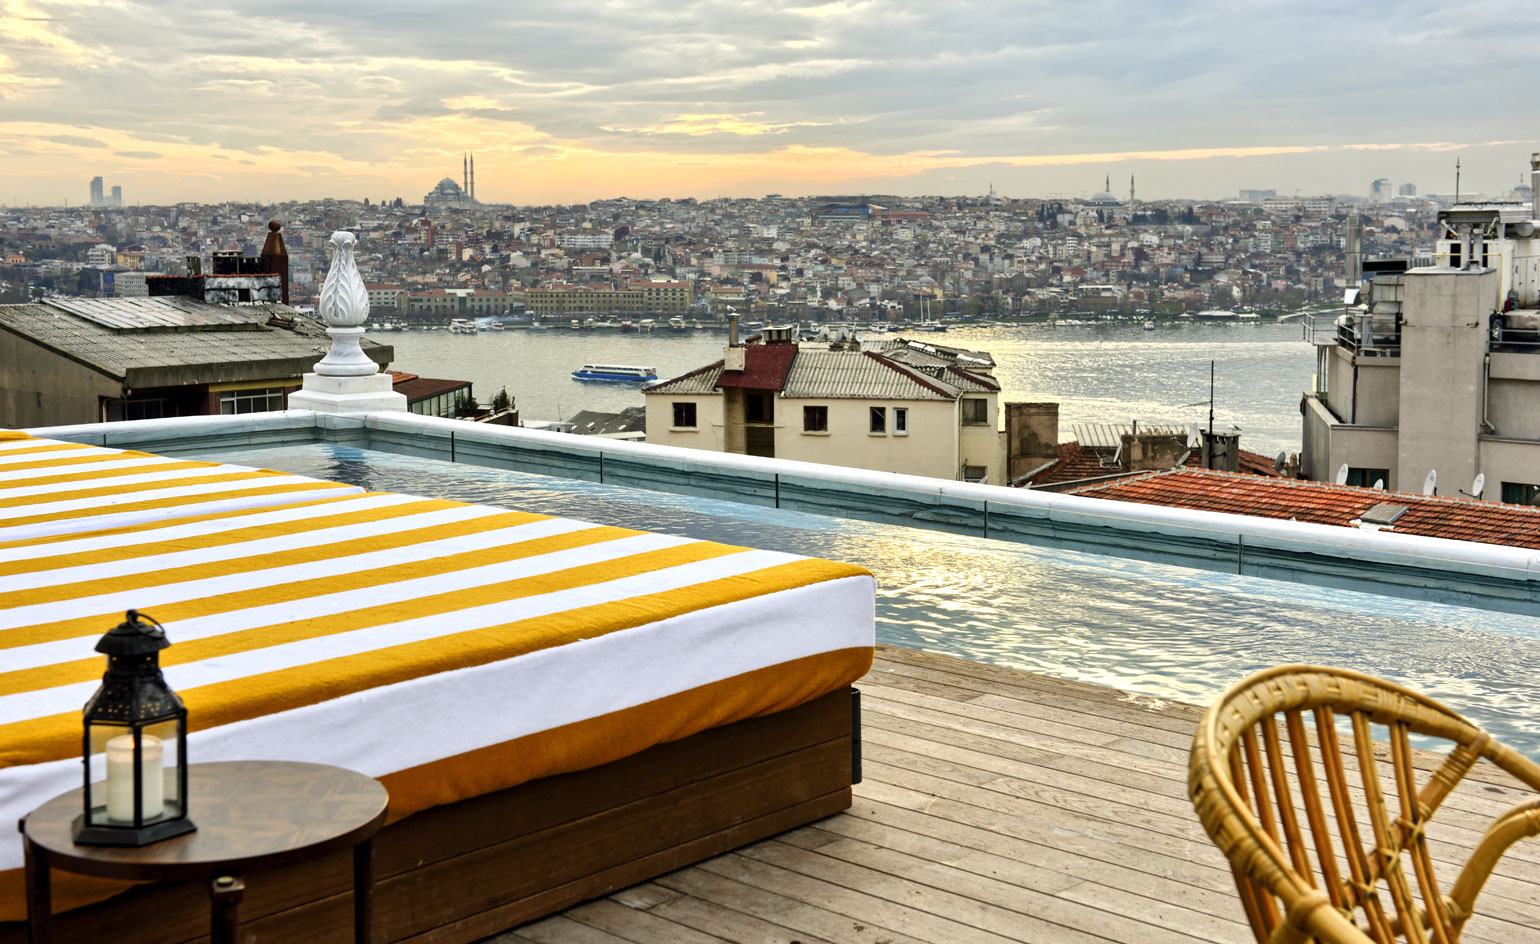 Soho house hotel review istanbul turkey wallpaper for Amida house istanbul